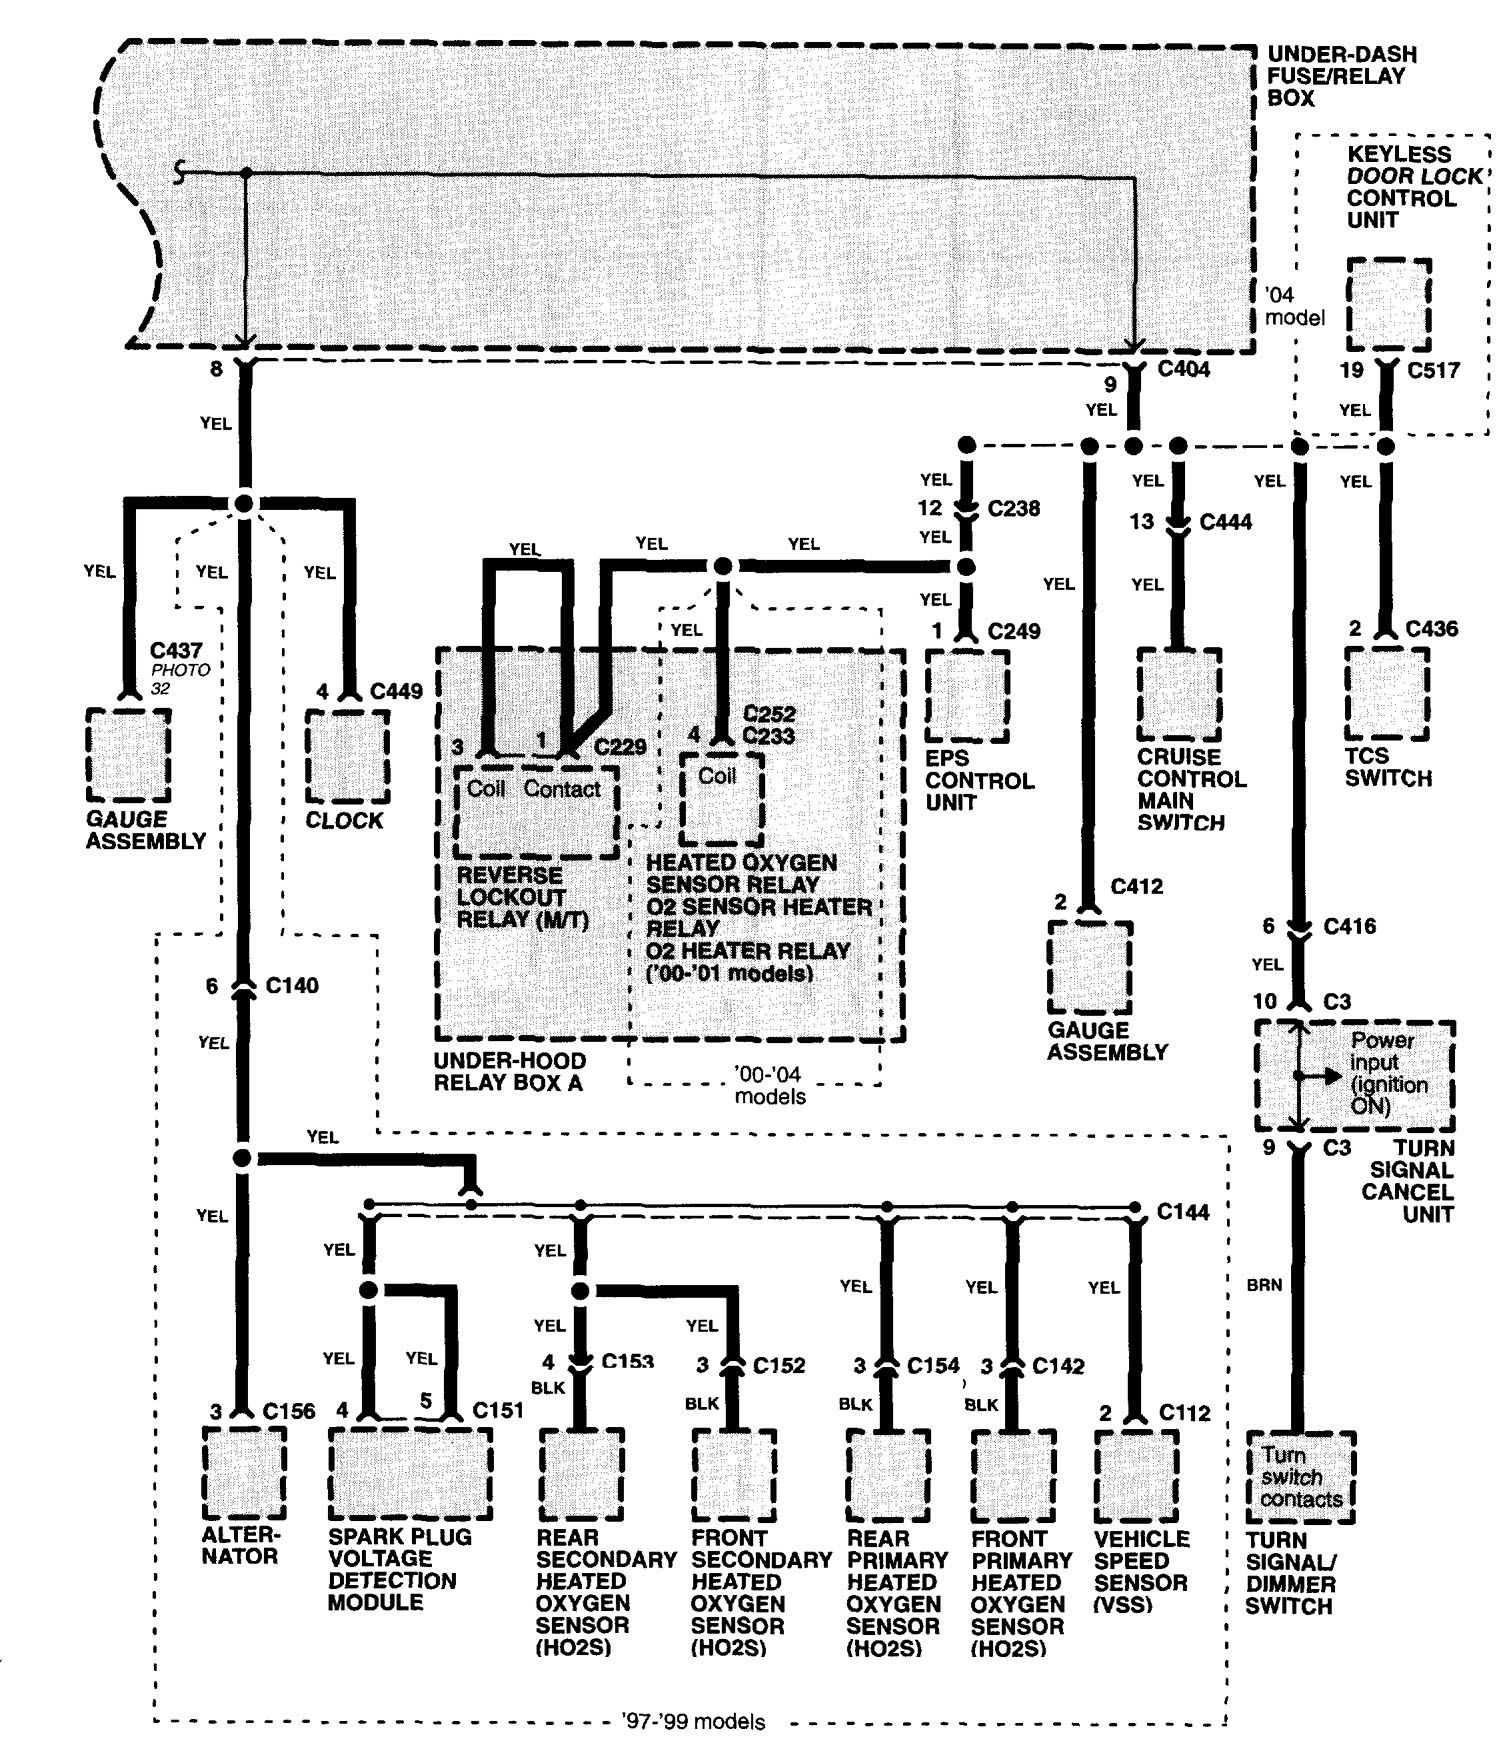 Acura NSX (1997 - 2004) - wiring diagrams - power distribution ...